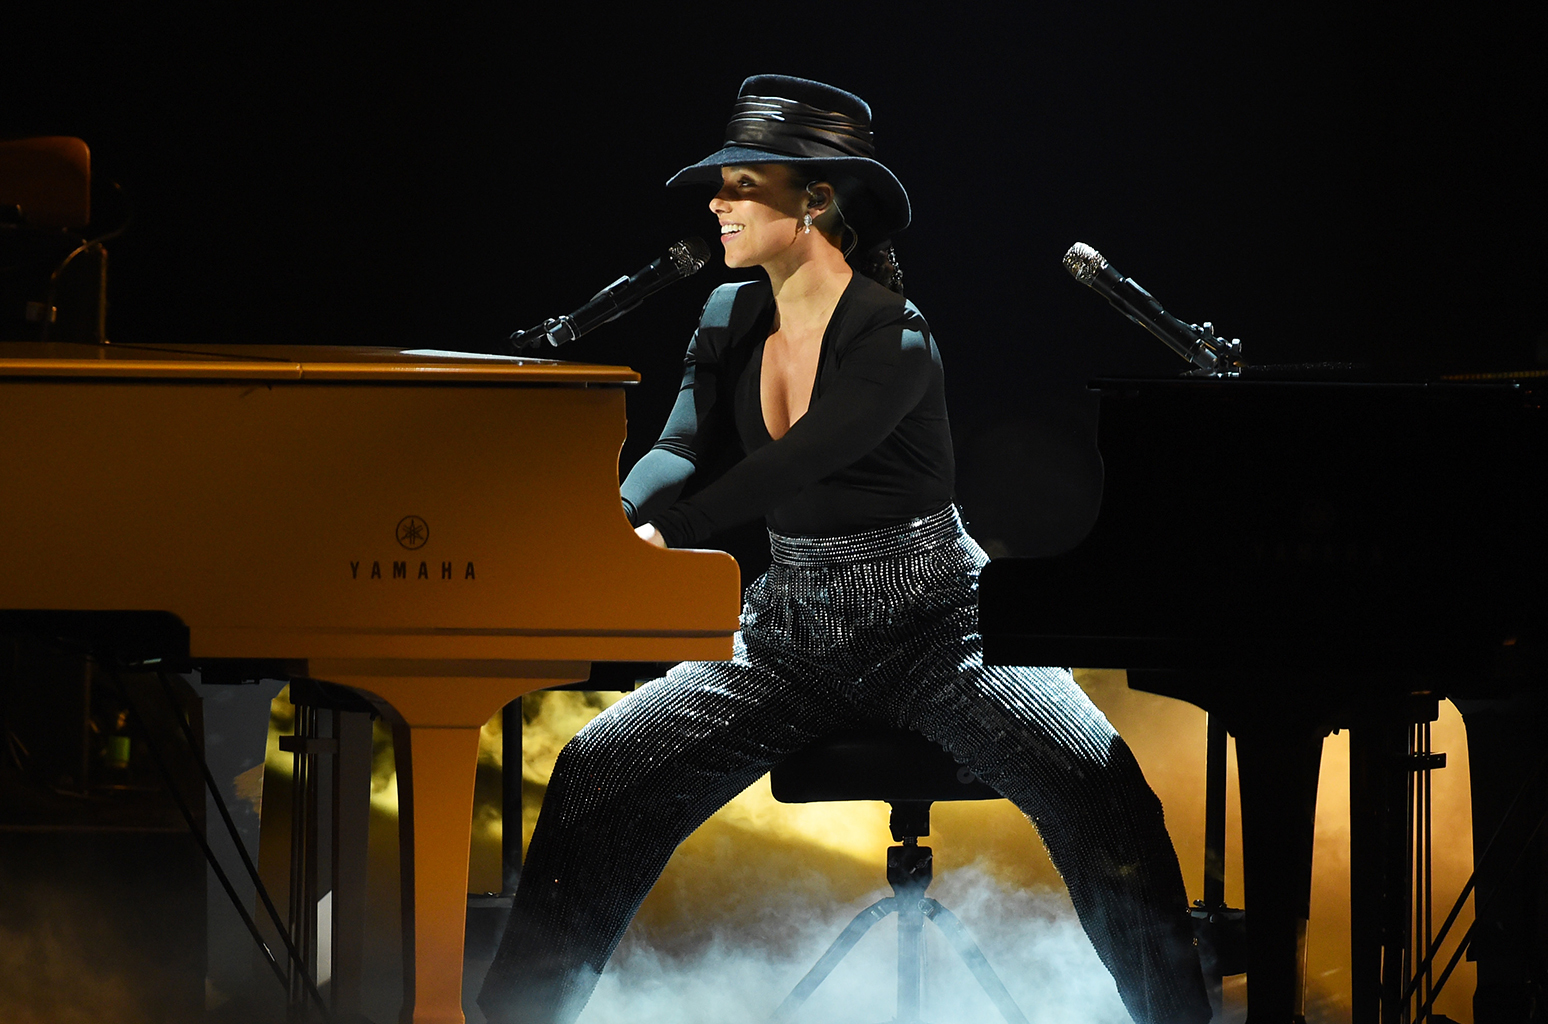 alicia-keys-performs-grammys-show-2019-billboard-1548.jpg